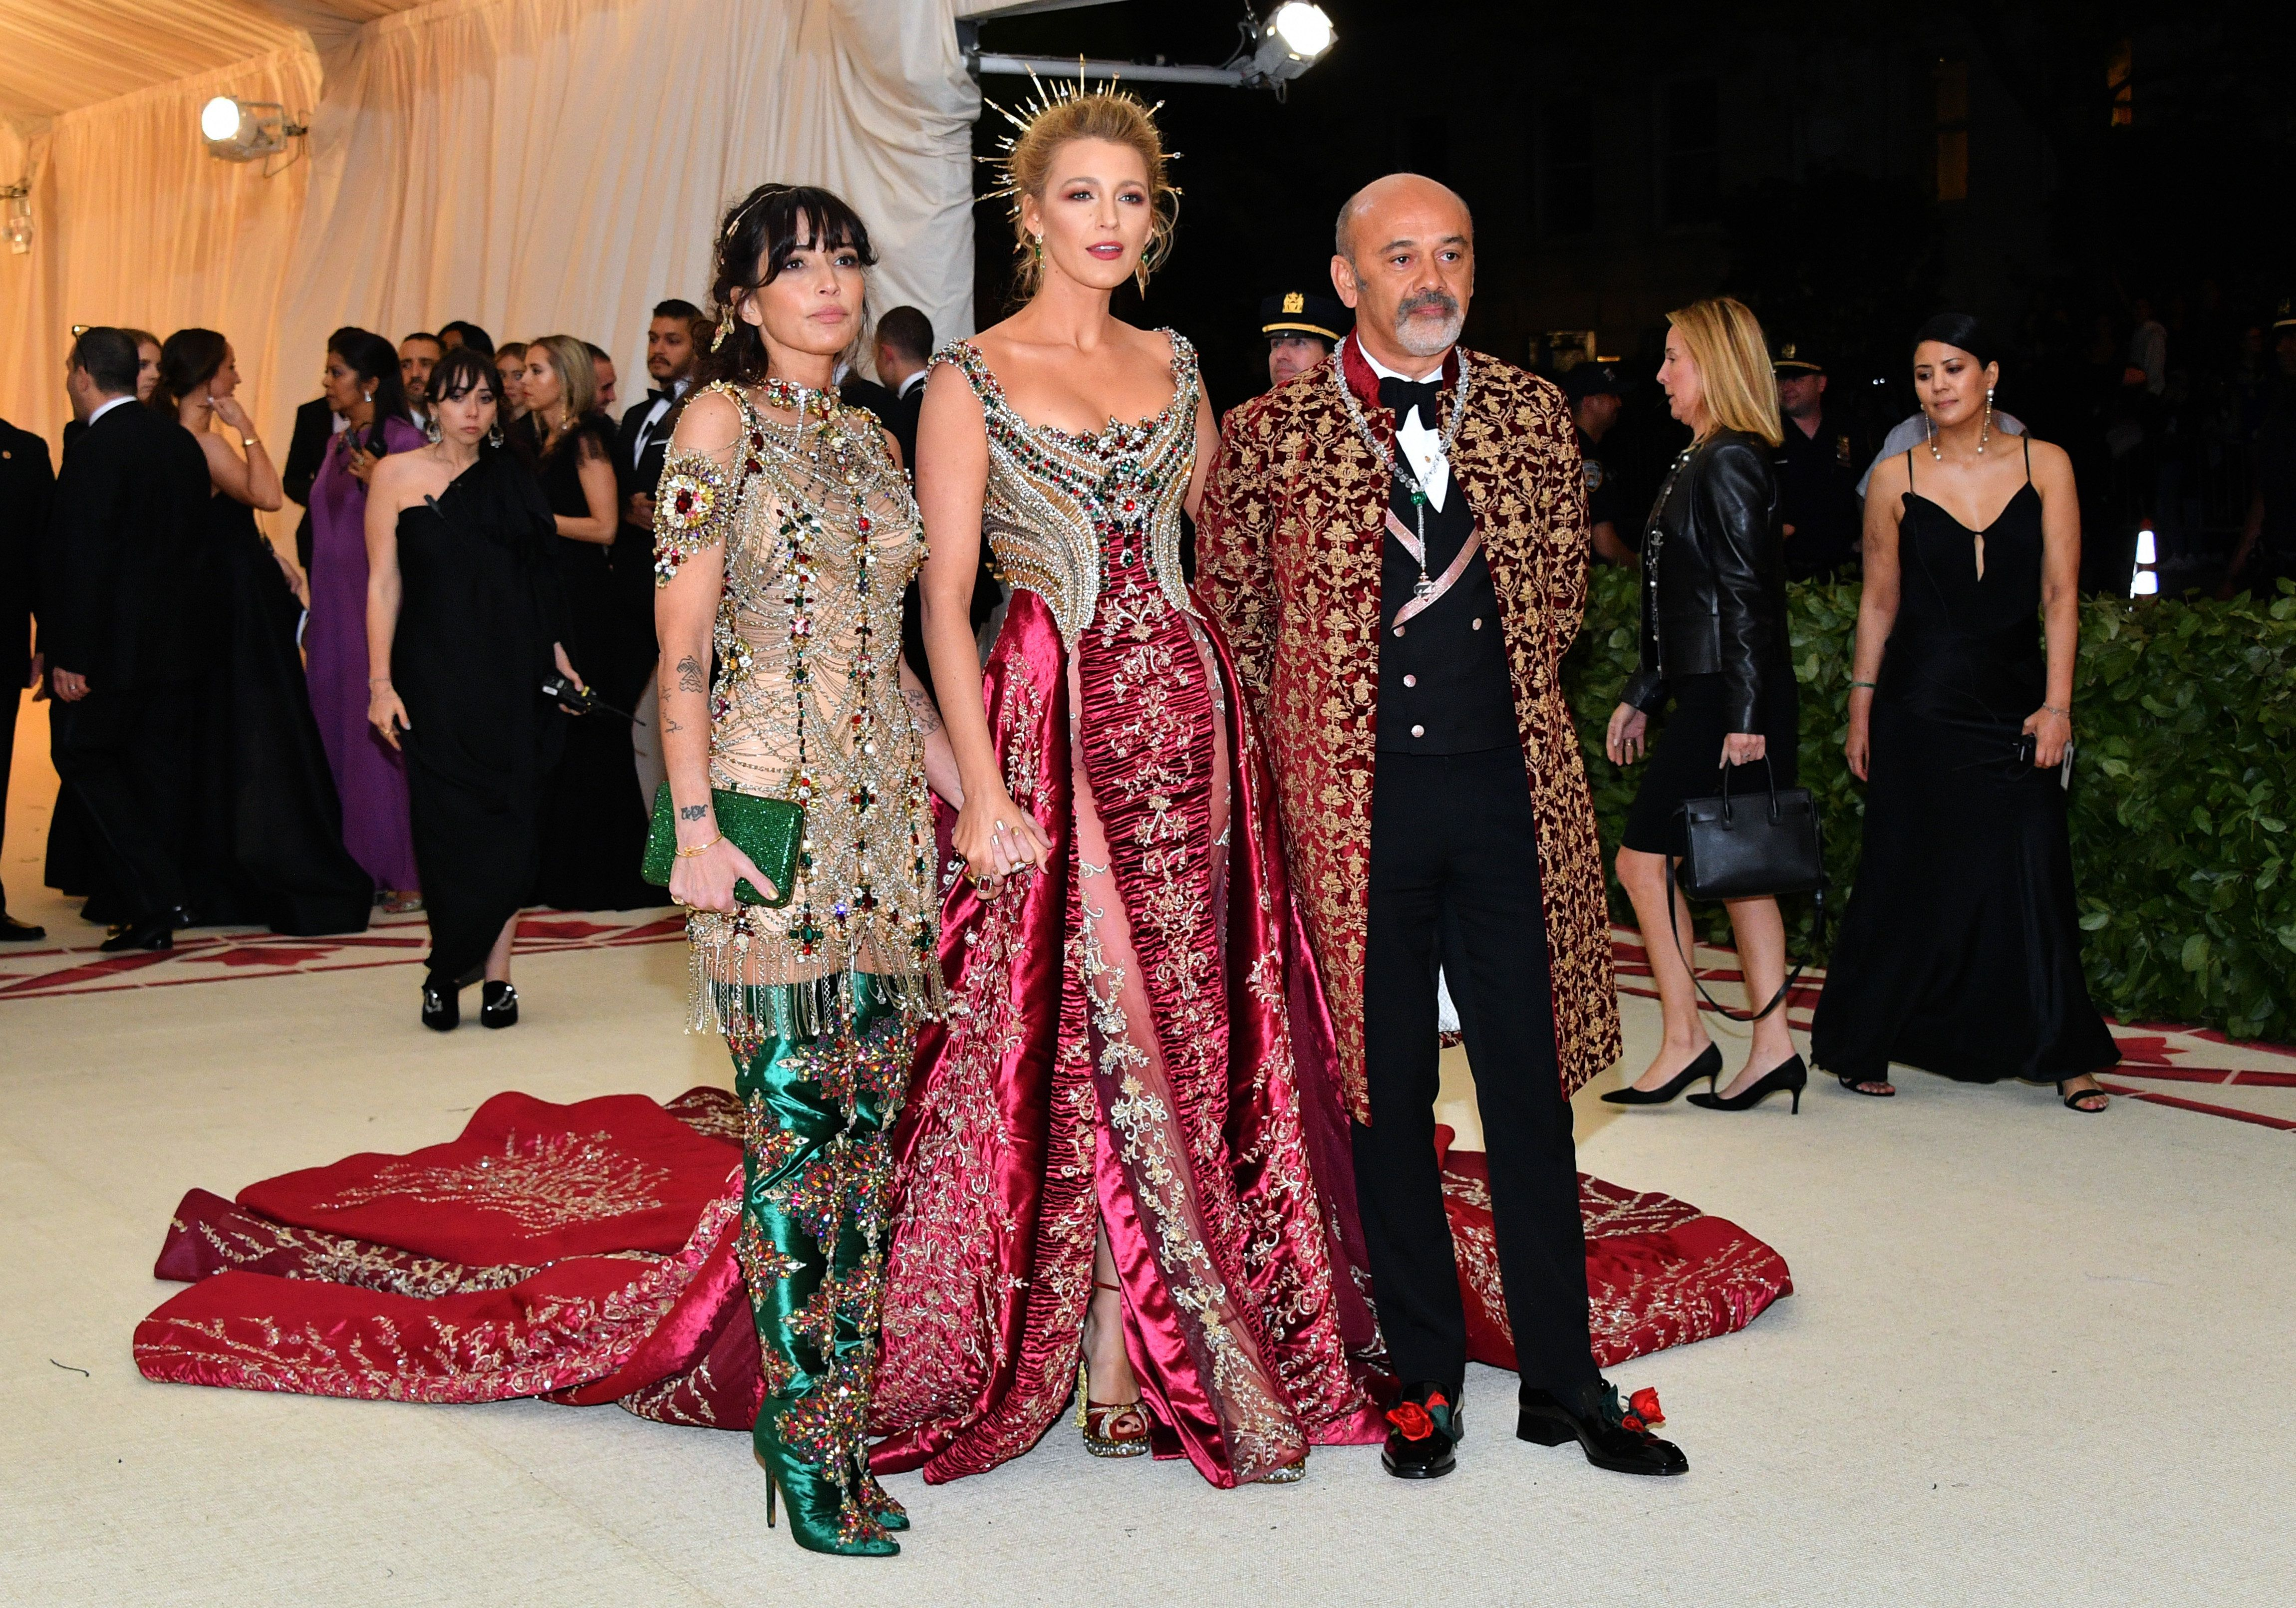 Reed Morano, Blake Lively and Christian Louboutin attends the Met Gala.